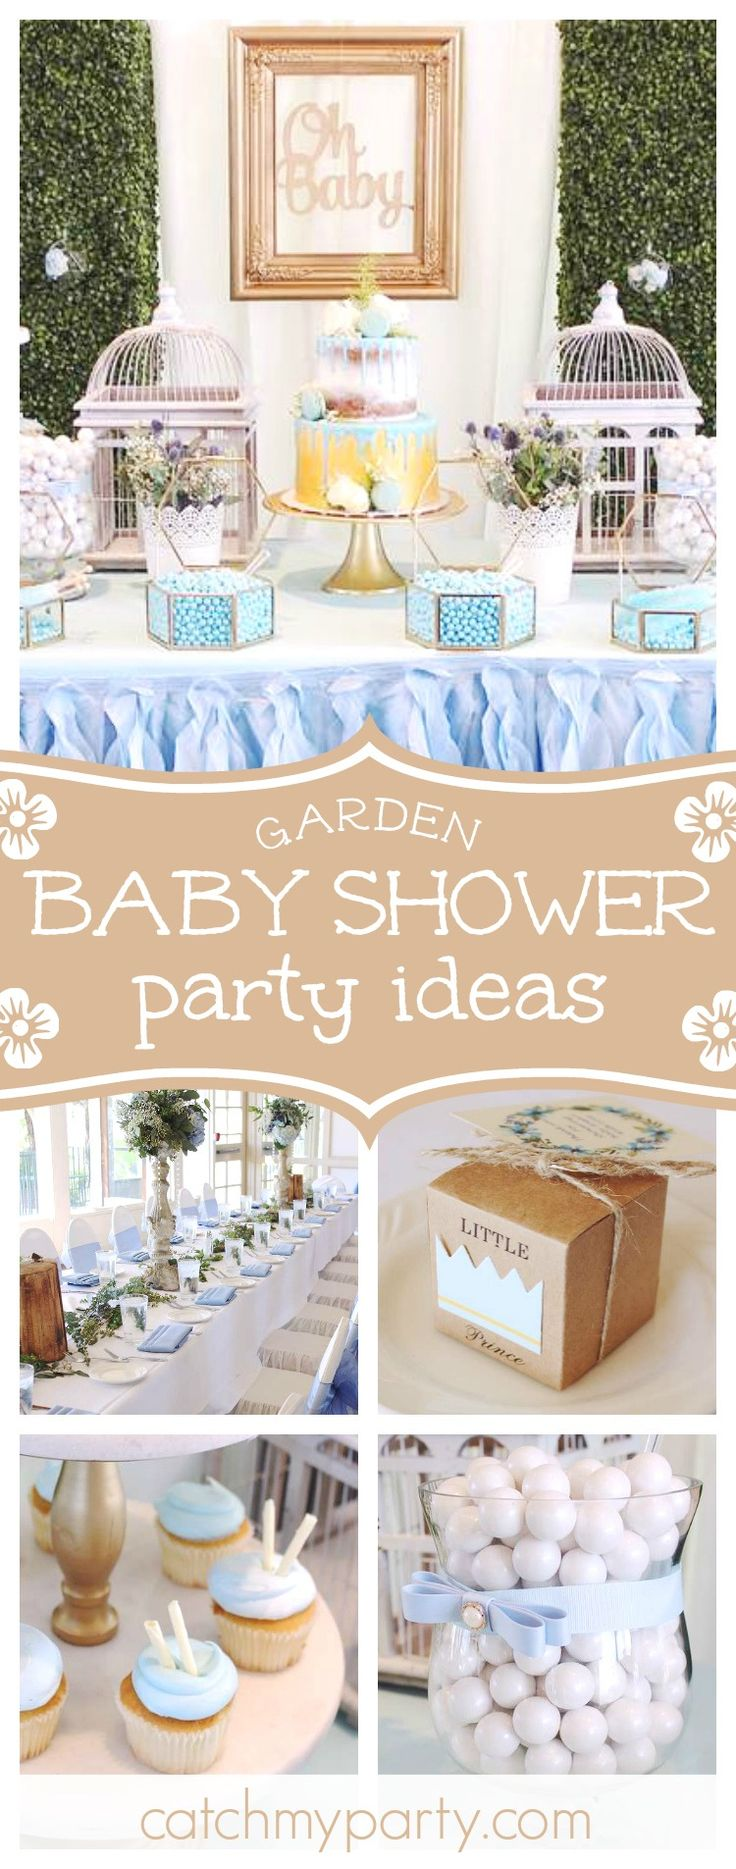 Don't miss this gorgeous Garden Baby Shower. Th cake is absolutely incredible!! See more party ideas and share yours at CatchMyParty.com